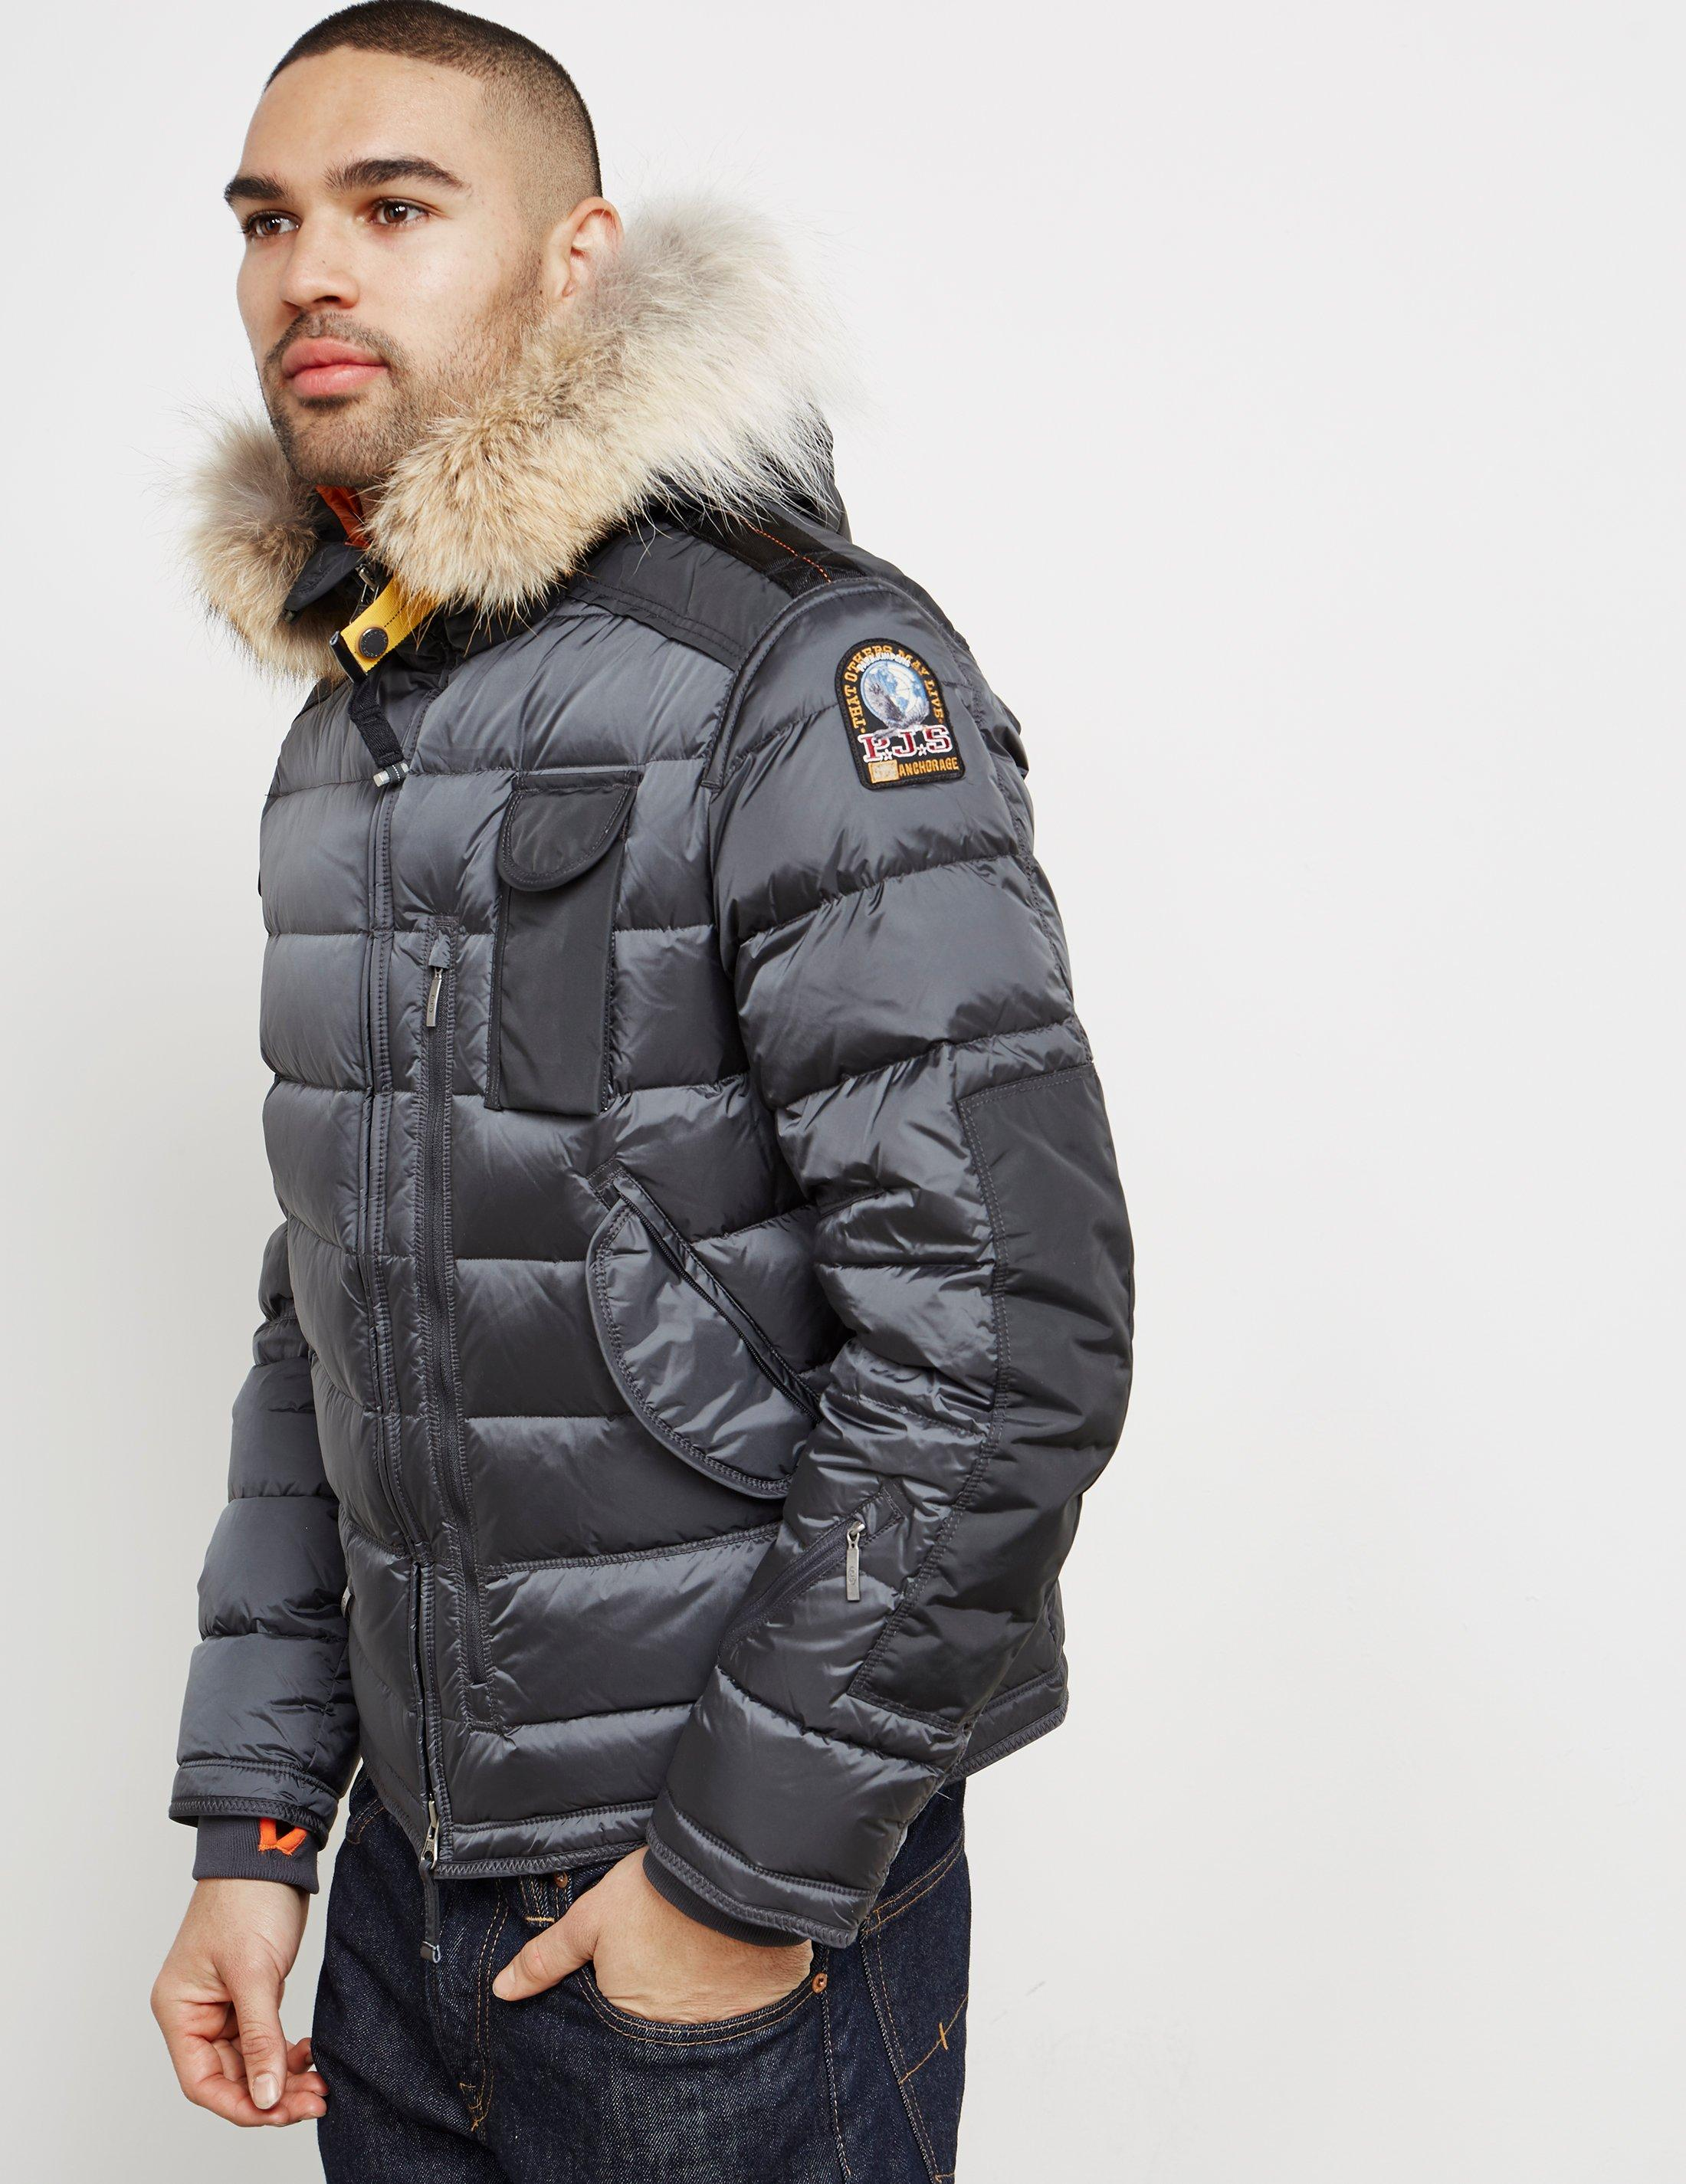 ... parajumpers sale toronto police parajumpers outlet store nederland co. parajumpers herren xl parajumpers toronto canada weather parajumpers leren jas.